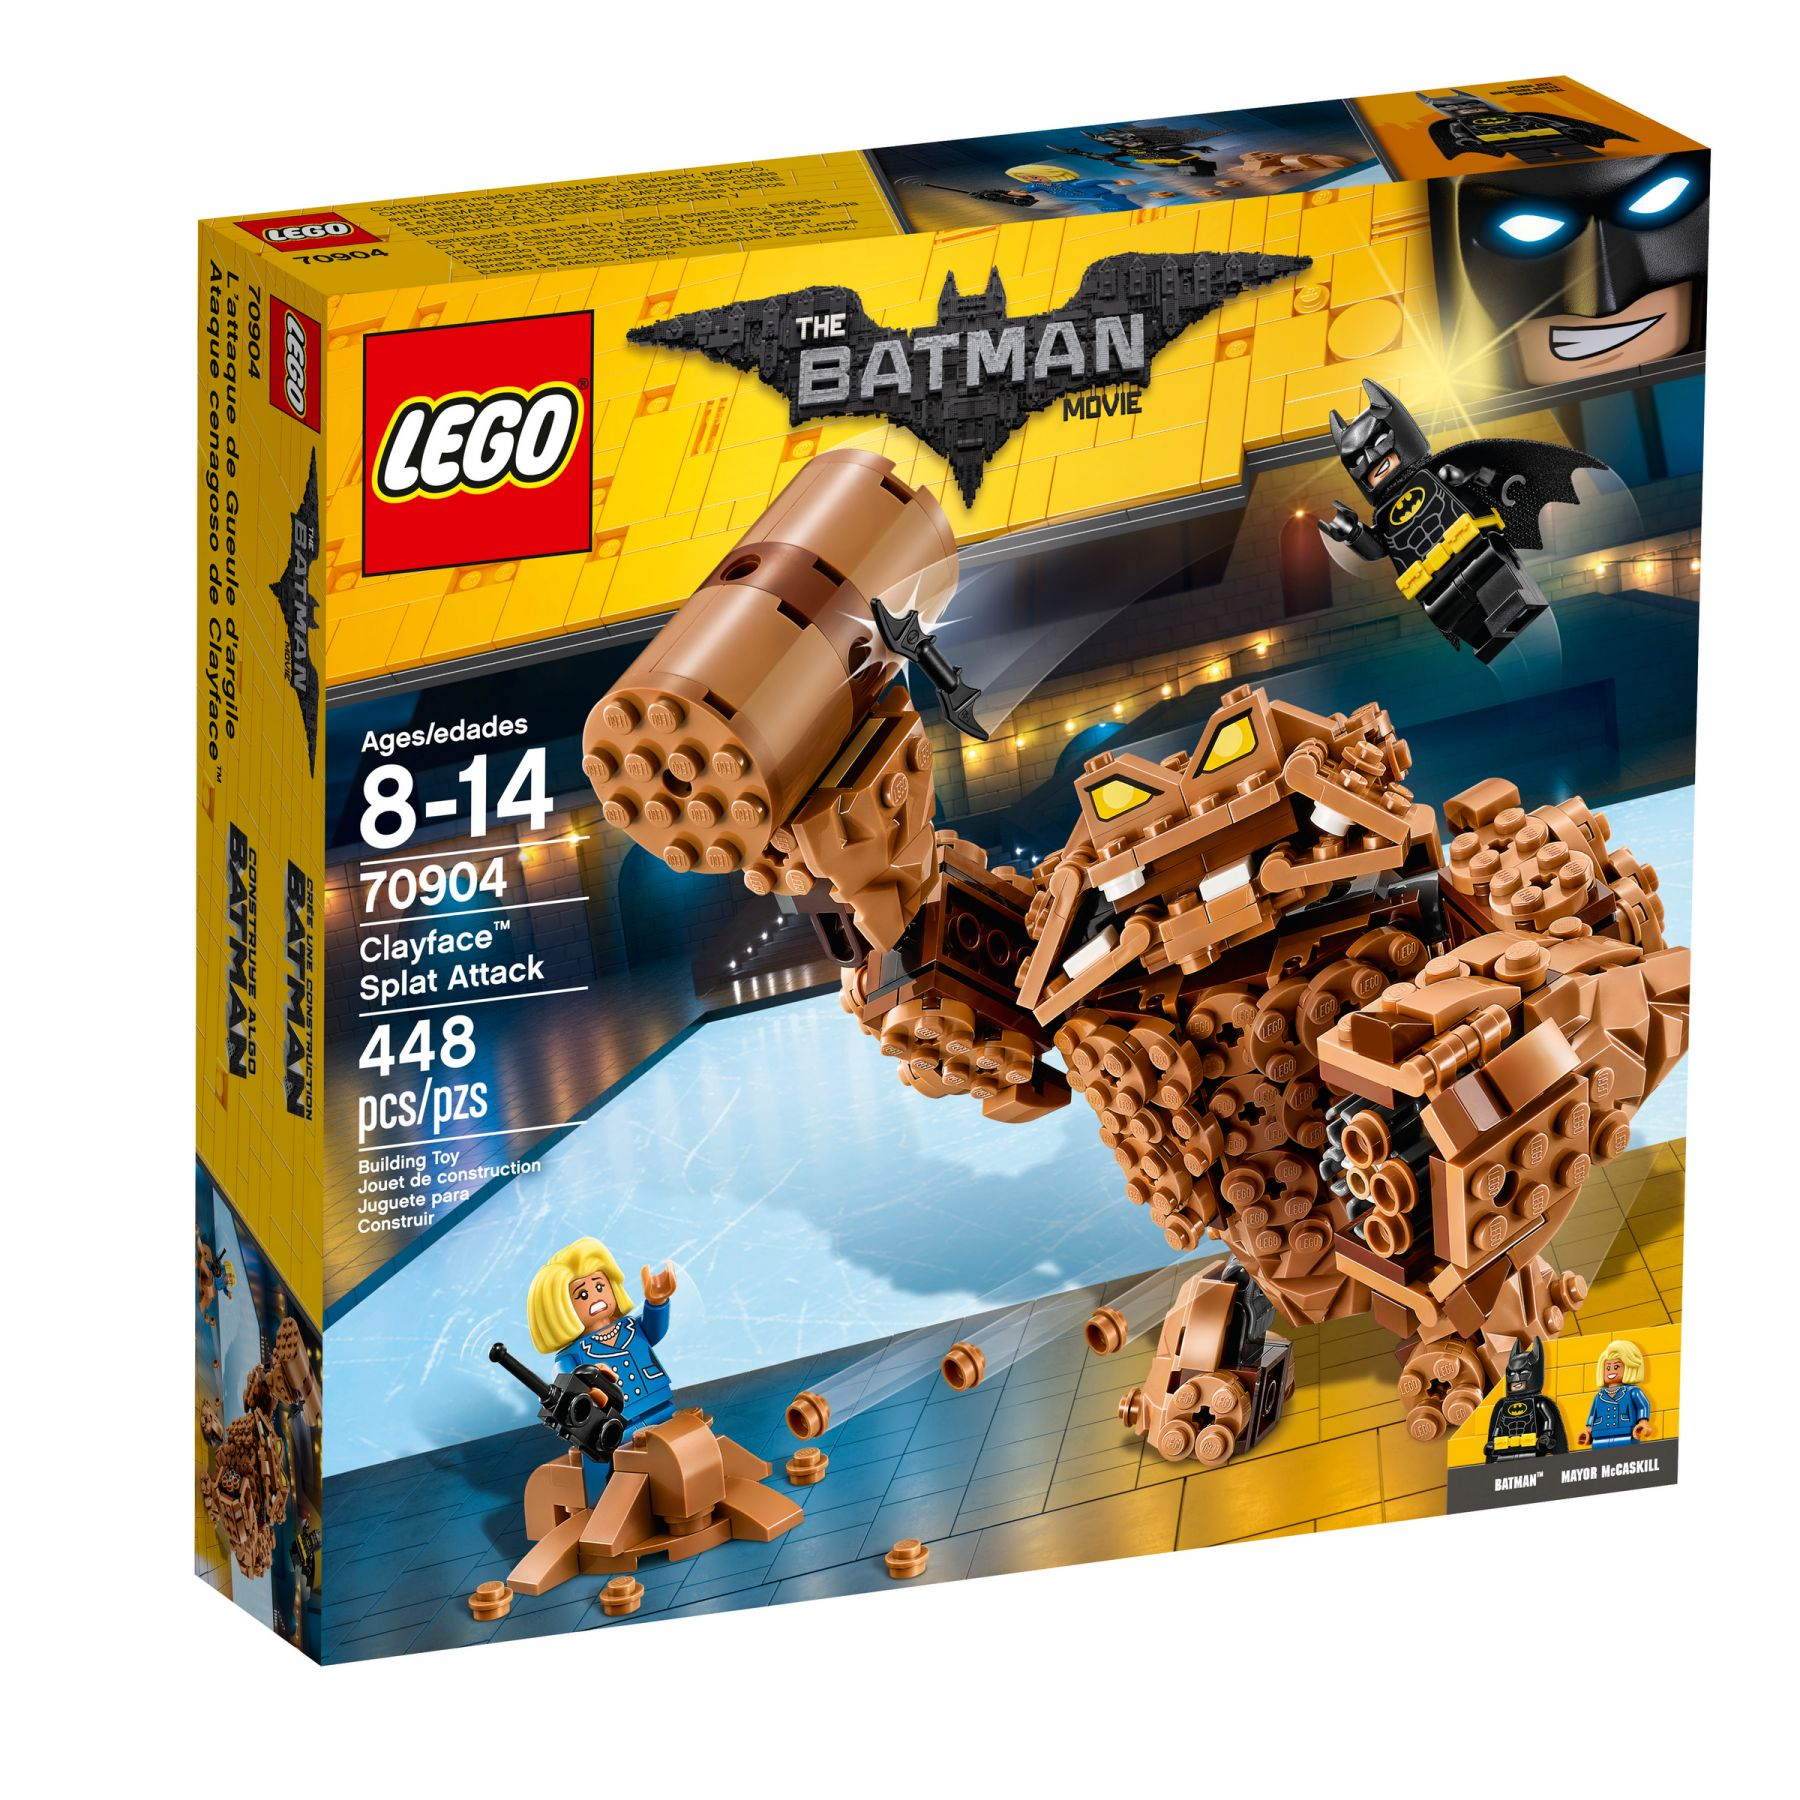 LEGO The LEGO Batman Movie 70904 Clayface™: Matsch-Attacke LEGO_70904_alt1.jpg